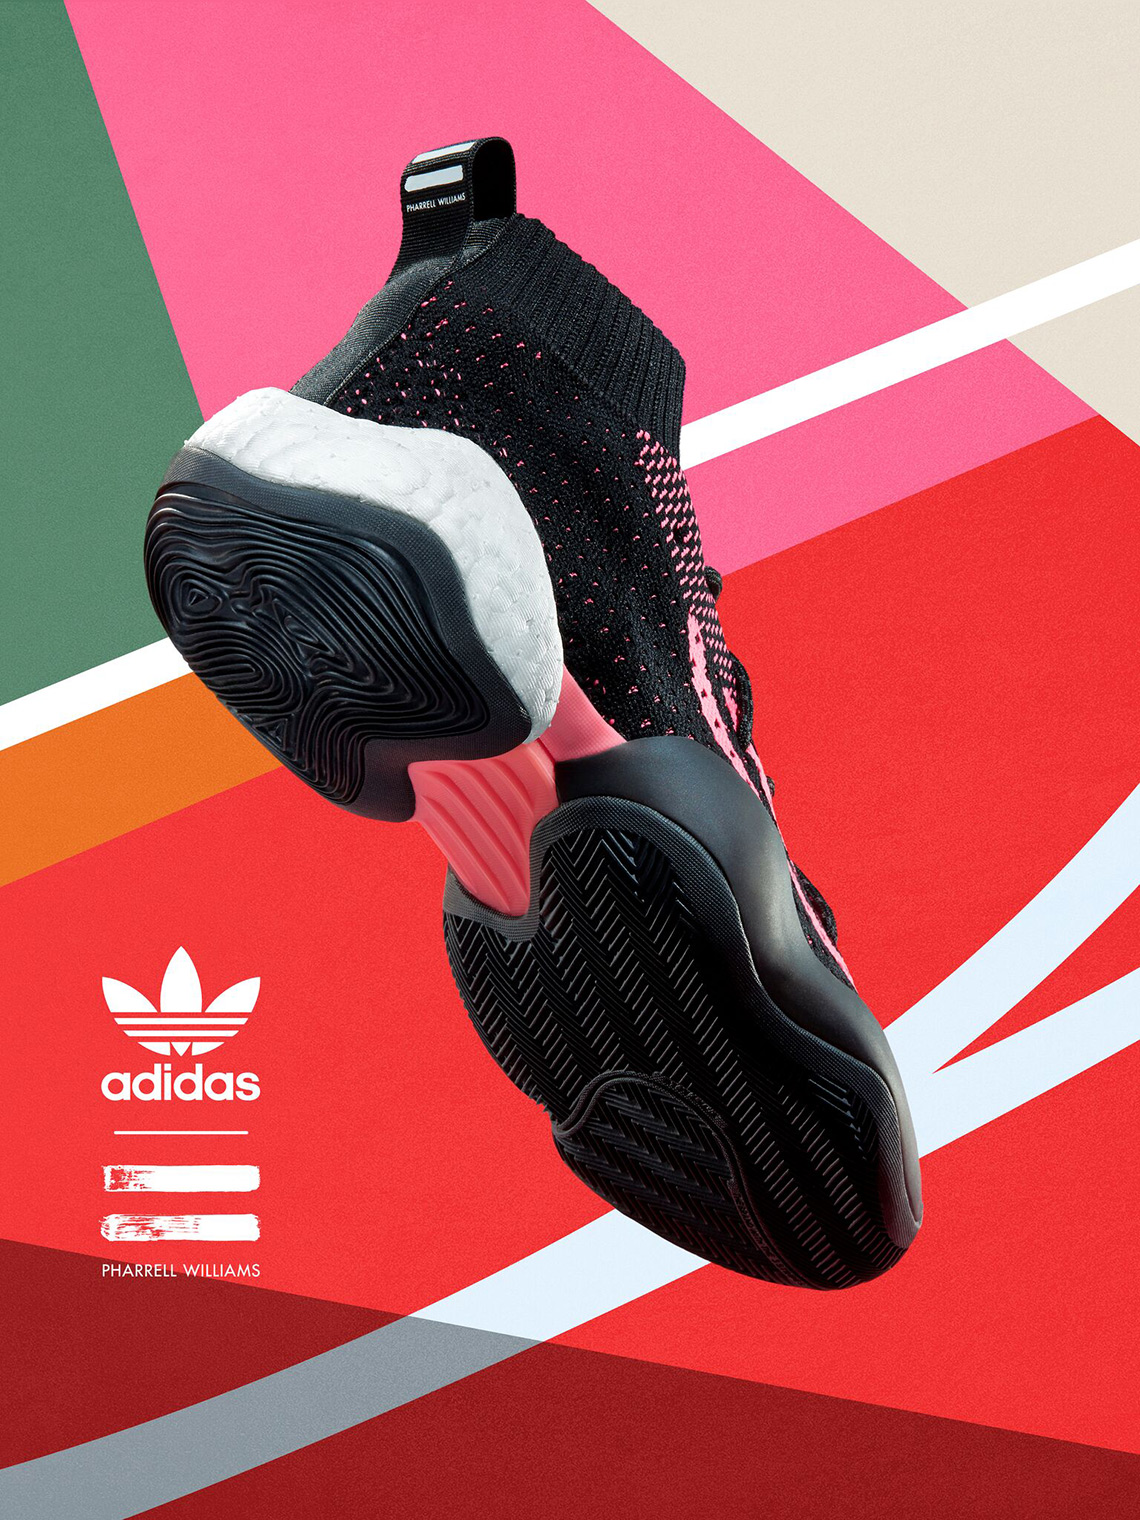 43f1447091d Pharrell x adidas Crazy BYW LVL X Release Date  July 13th 2018. COMING SOON  TO adidas  250. Color  Black Footwear White-Solar Pink Style Code  G28182.  show ...